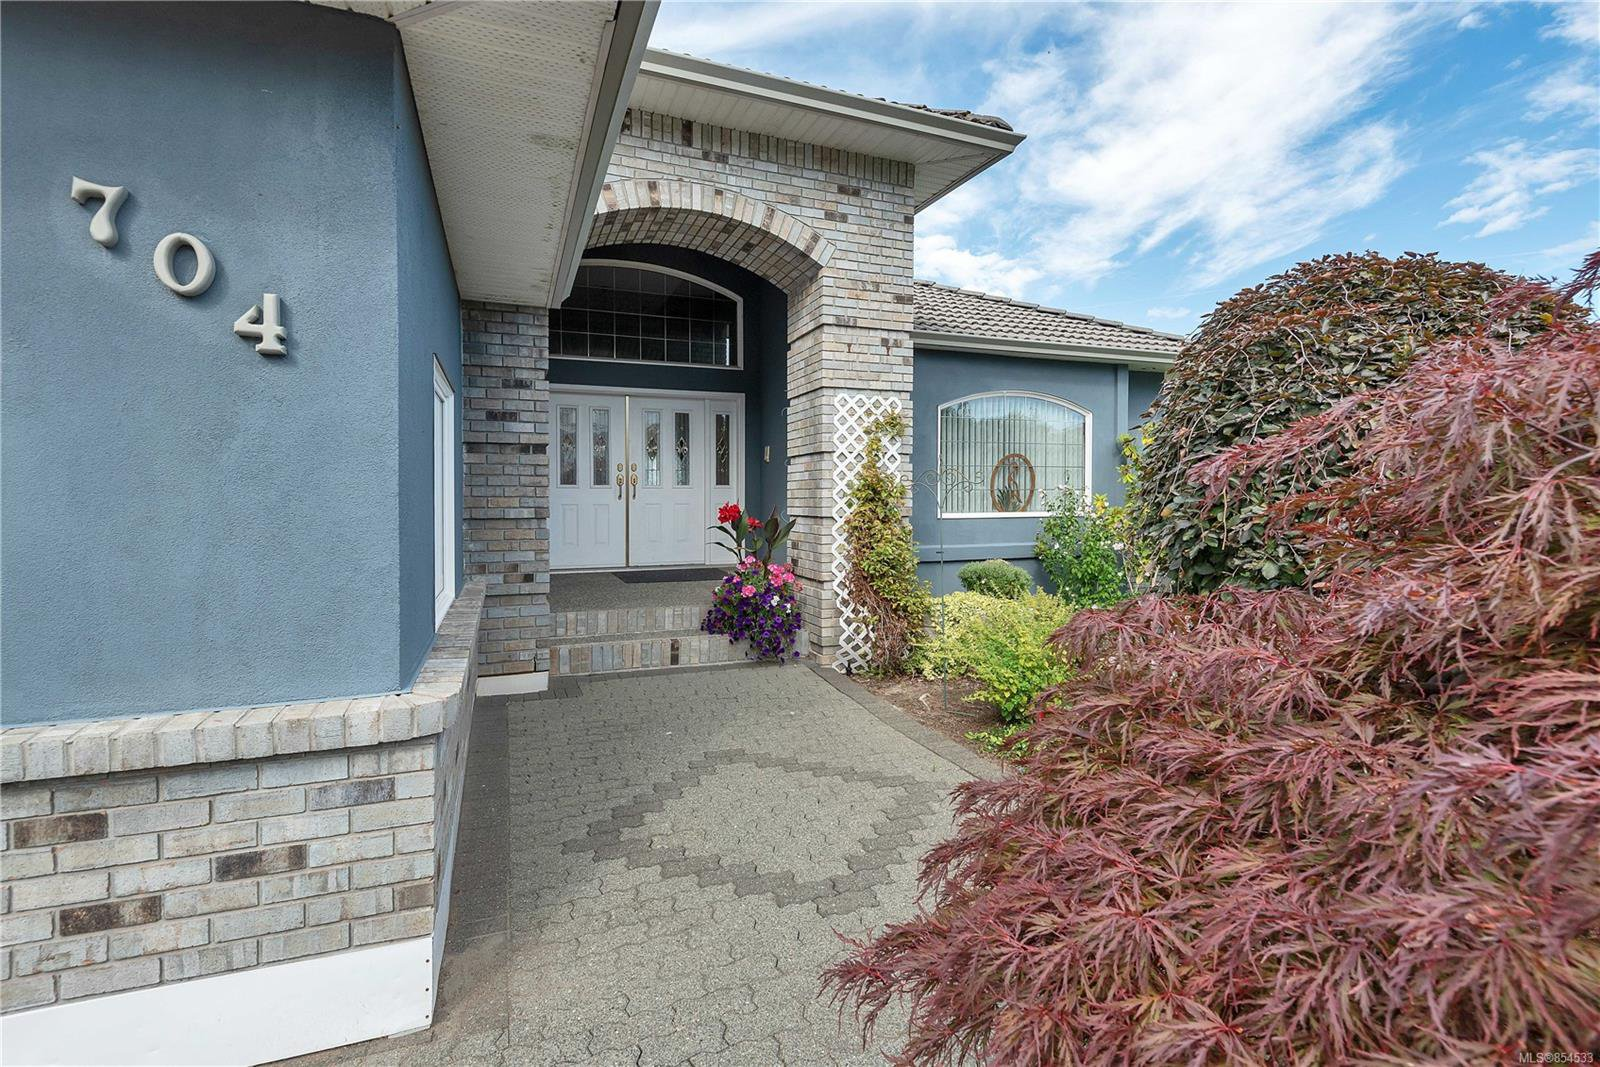 Main Photo: 704 Nelson Rd in : CR Willow Point Single Family Detached for sale (Campbell River)  : MLS®# 854533